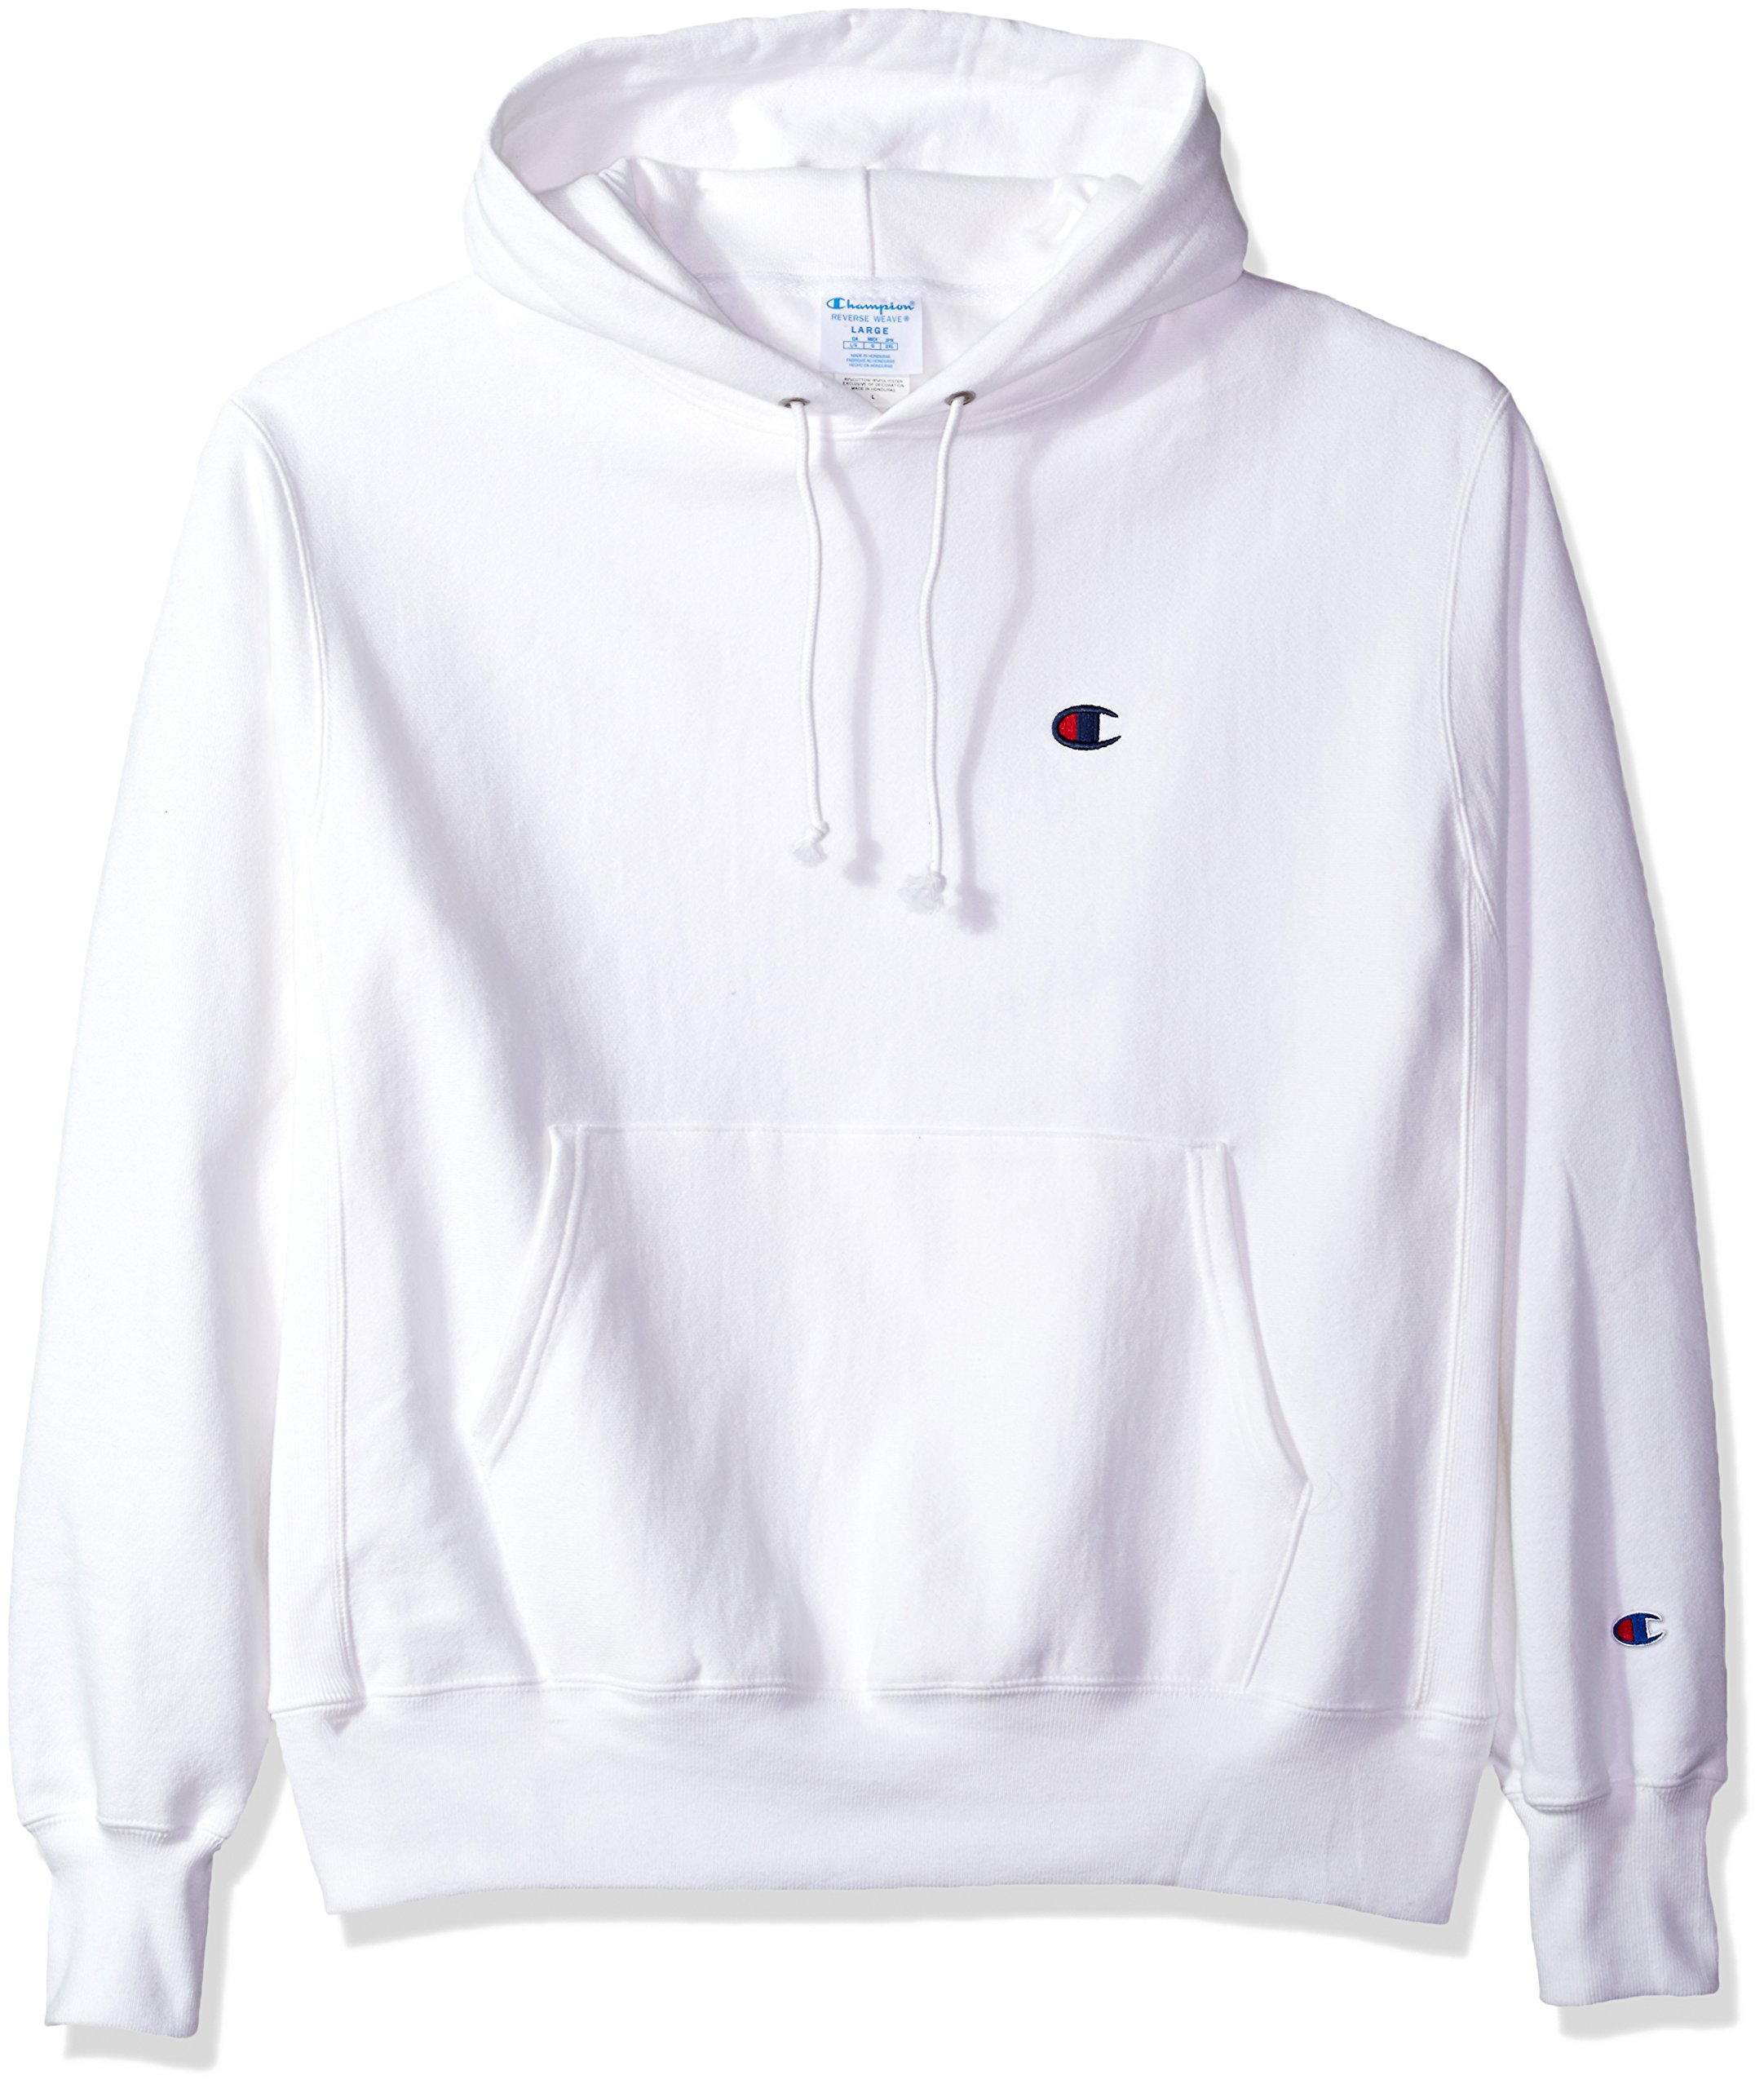 Champion LIFE Men's Reverse Weave Pullover Hoodie, White/Left Chest C Logo, Small